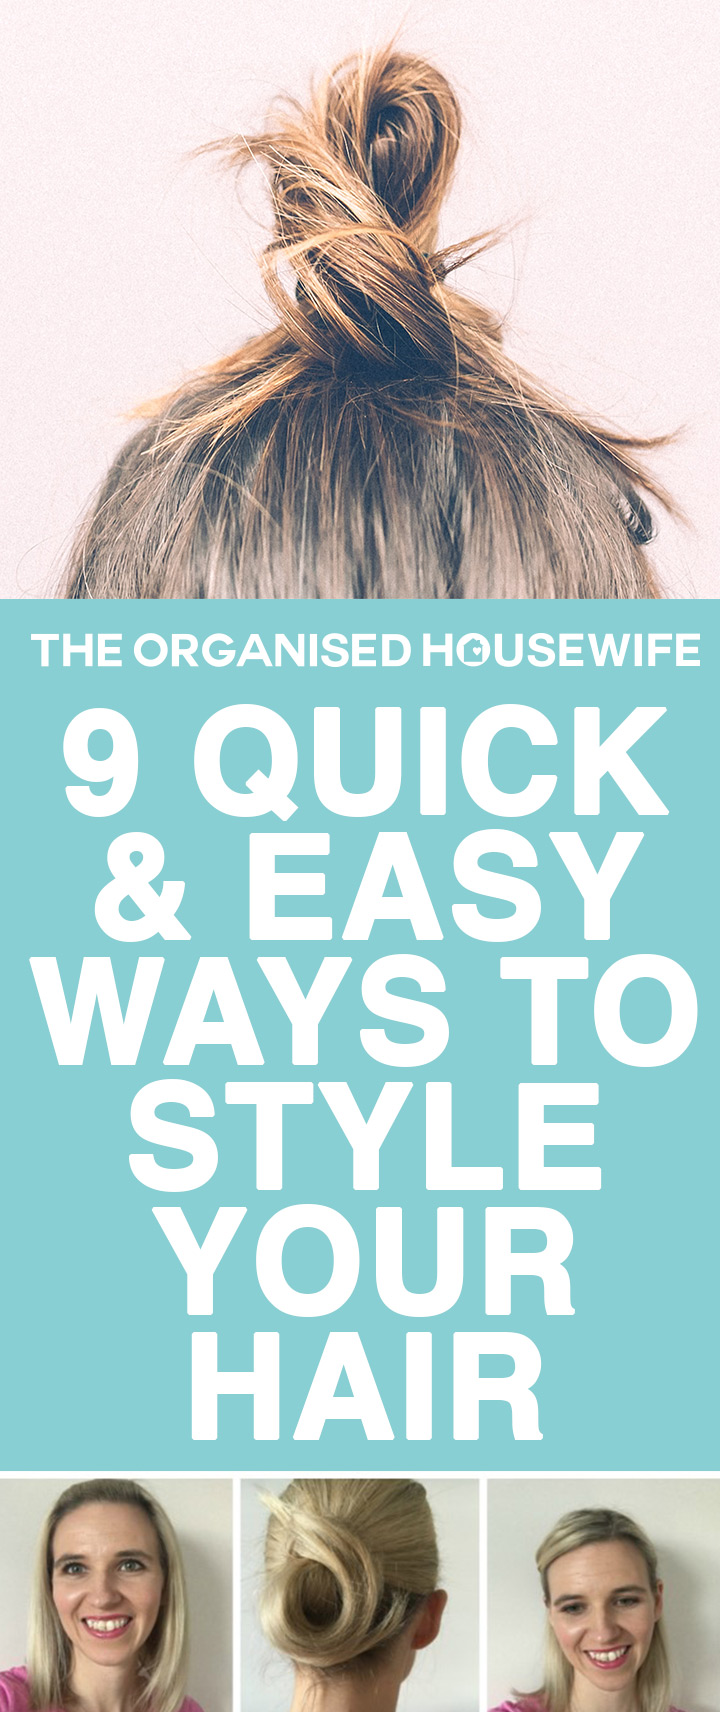 different ways to style your hair 9 and easy ways to style your hair the organised 5616 | 9 quick and easy ways to style to your hair PIN